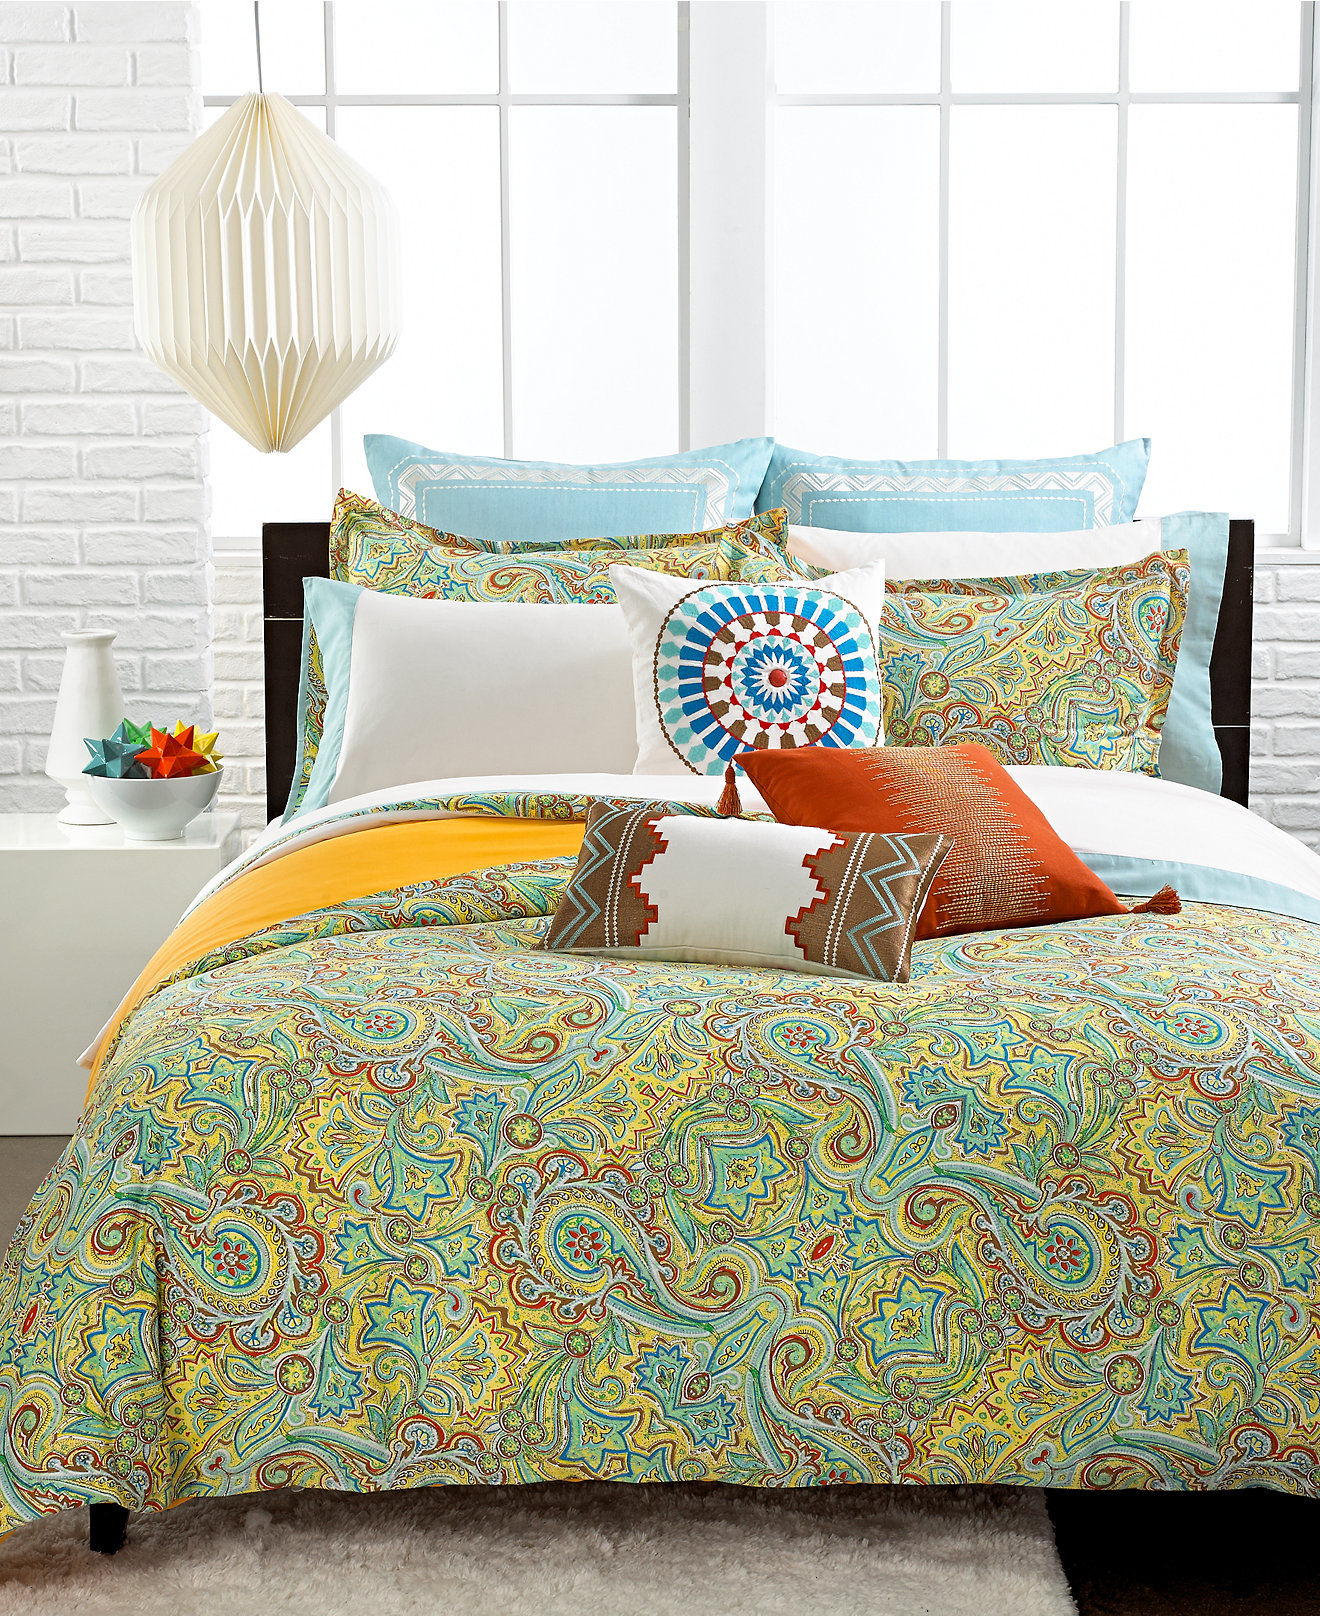 and jaipur design with pillow covers for echo pattern bedding floral cover your bedroom bed decor duvet ideas cool beautiful